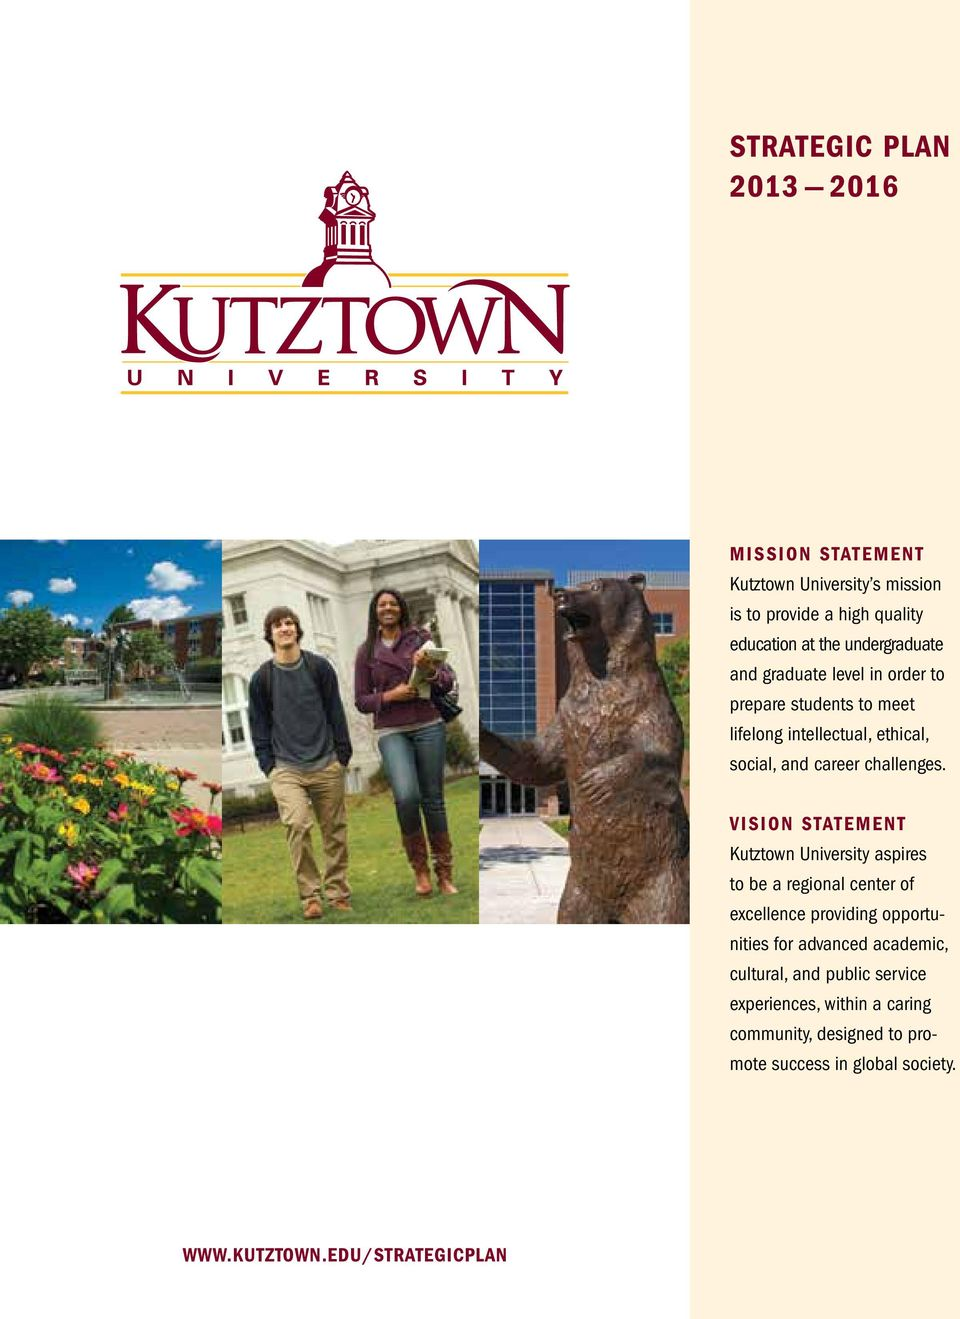 Vision Statement Kutztown University aspires to be a regional center of excellence providing opportunities for advanced academic,